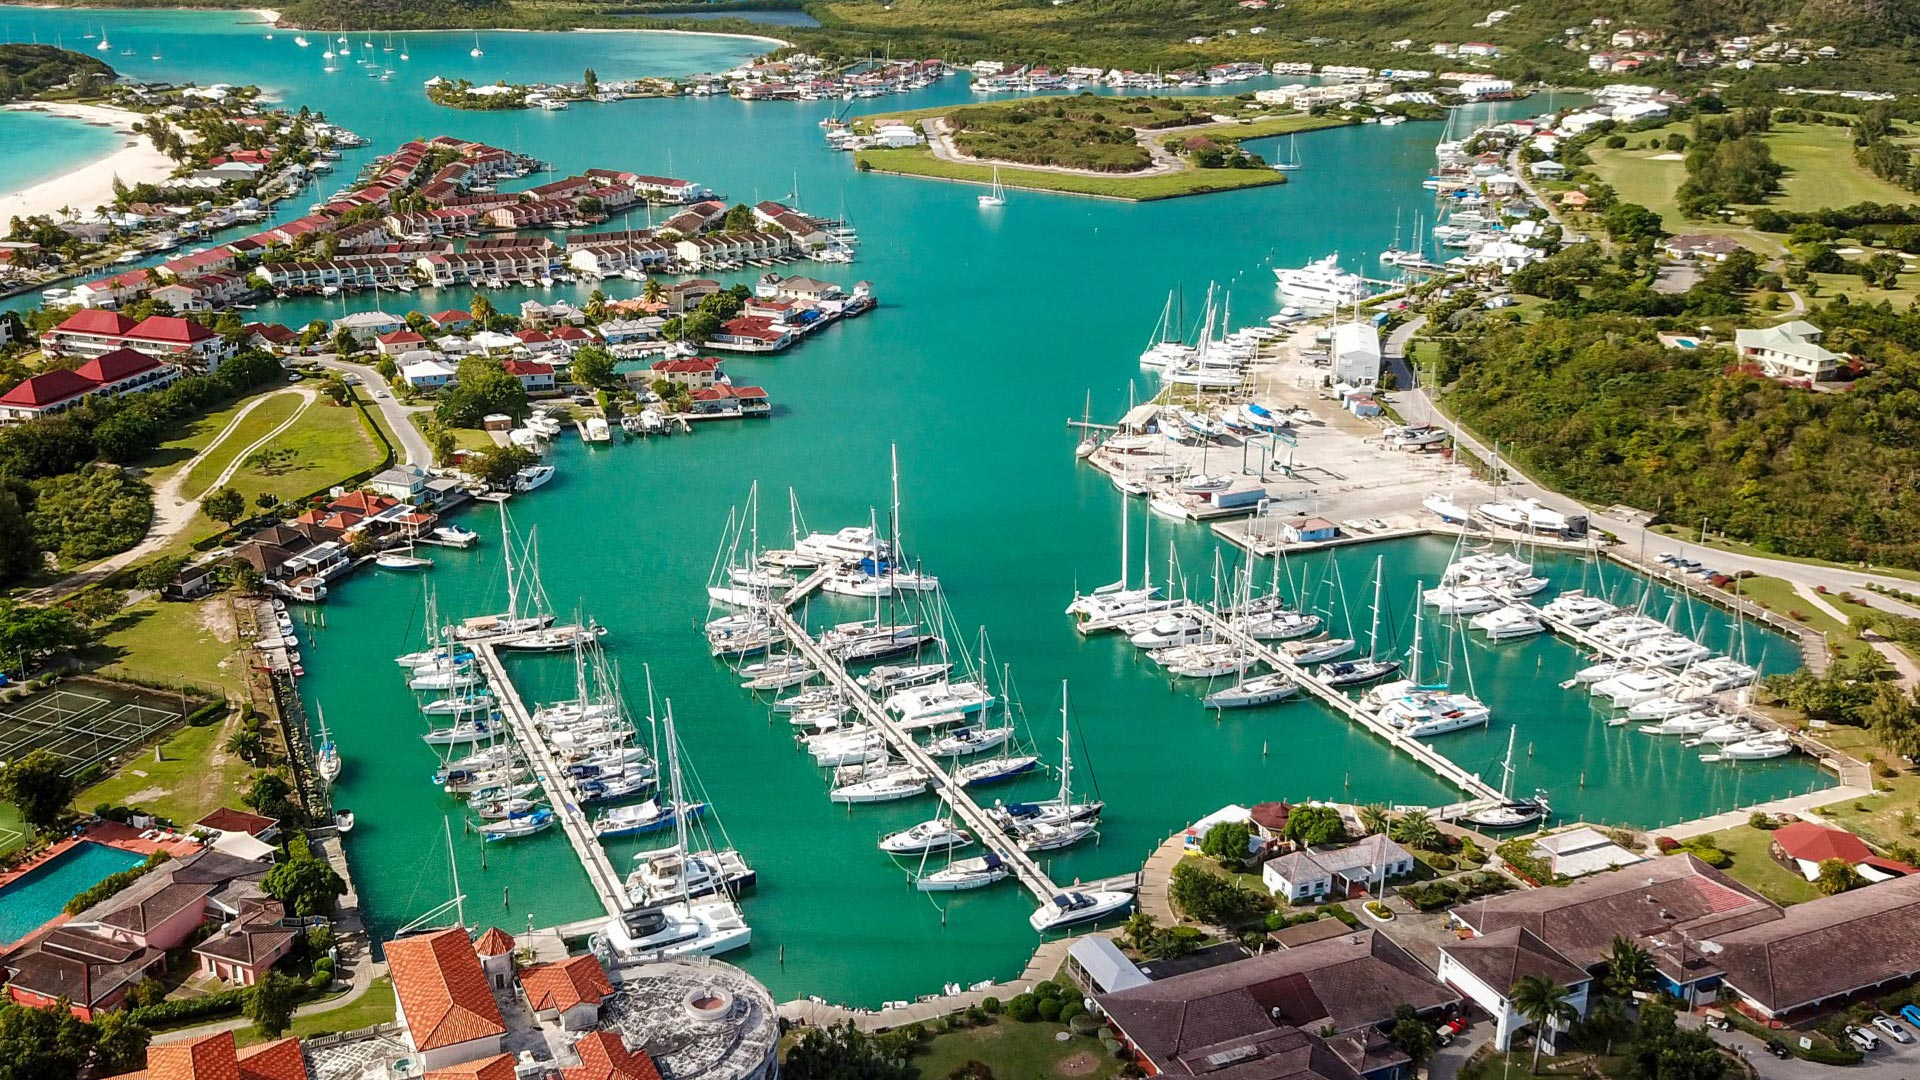 Jolly Harbour Marina aerial view